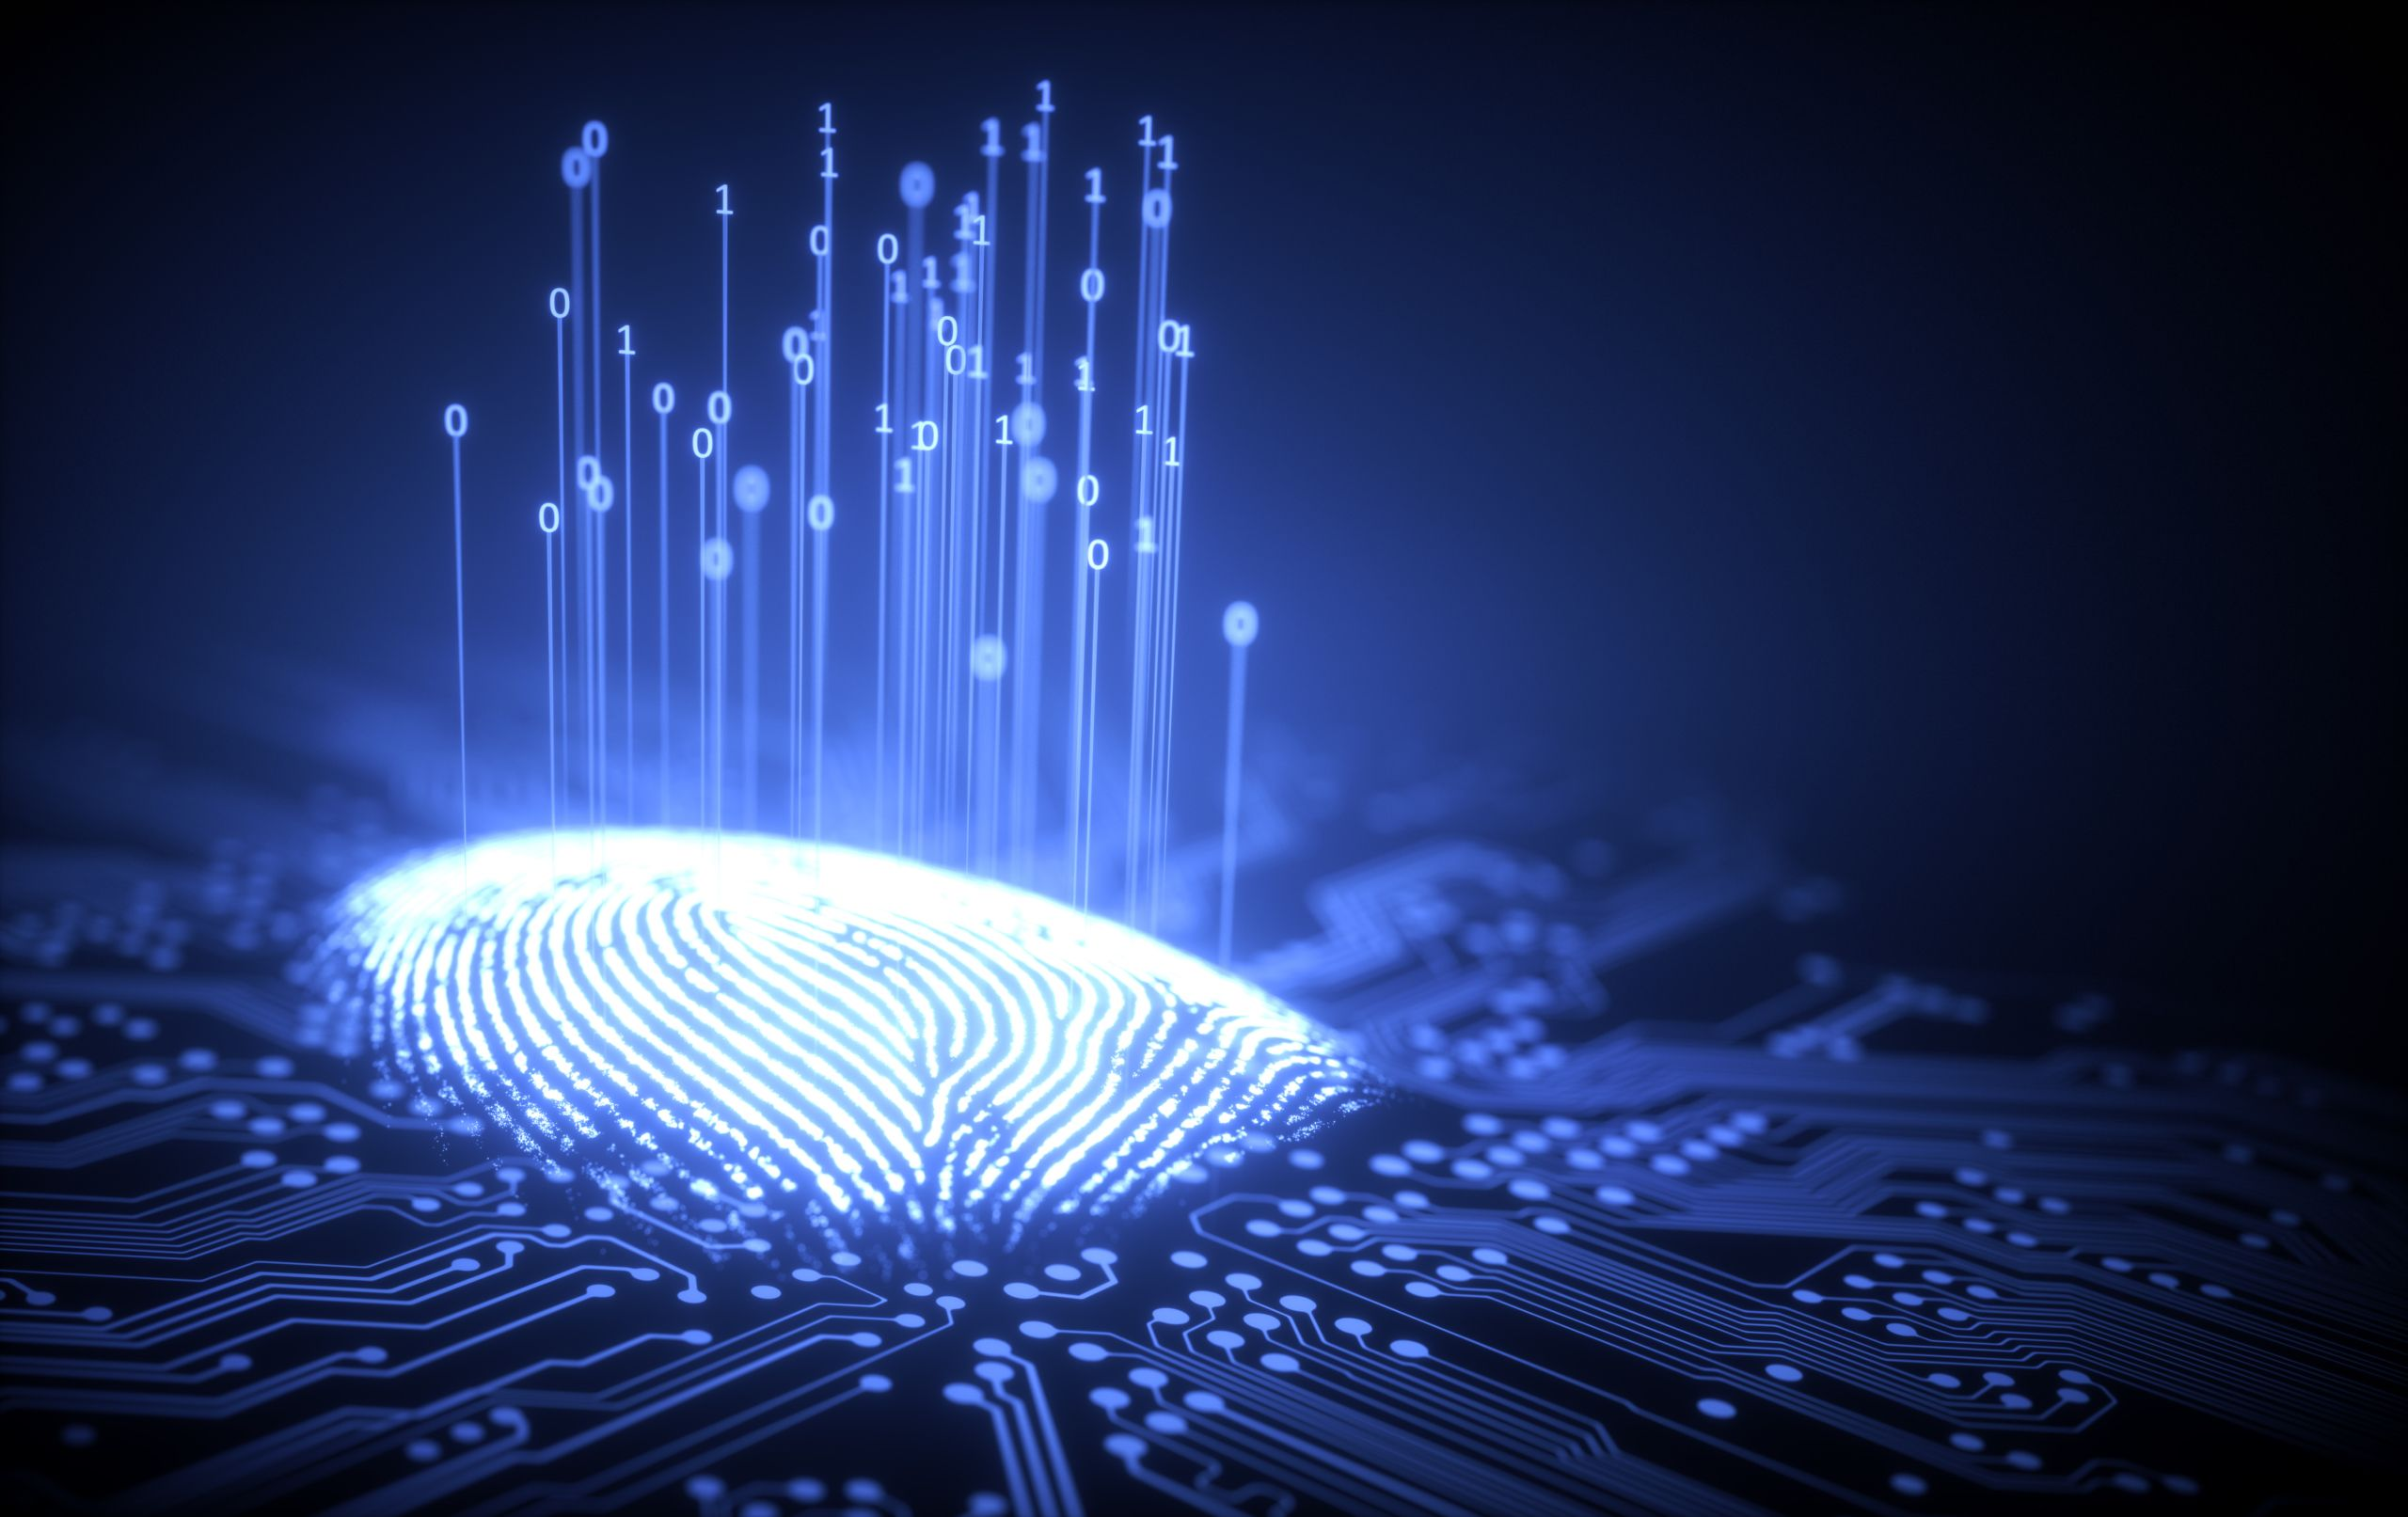 Fingerprint on computer chip illustrating cybersecurity